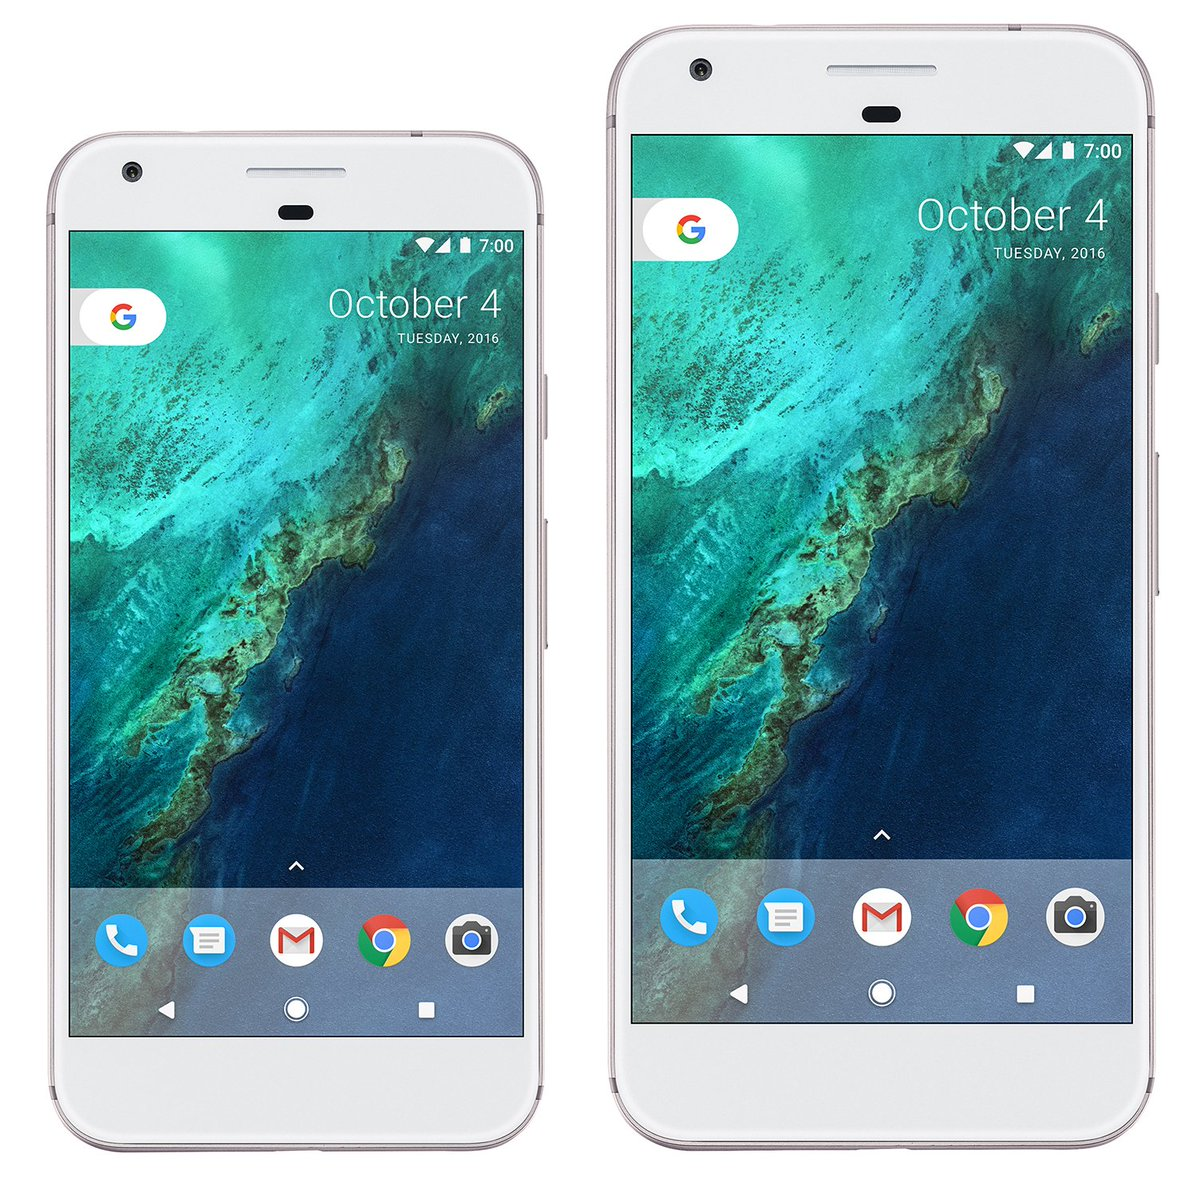 Get a $100 @BestBuy Gift Card with purchase and activation of Pixel, phone by Google #ad https://t.co/qGVgx58yc8 https://t.co/iFi3hsd5V1